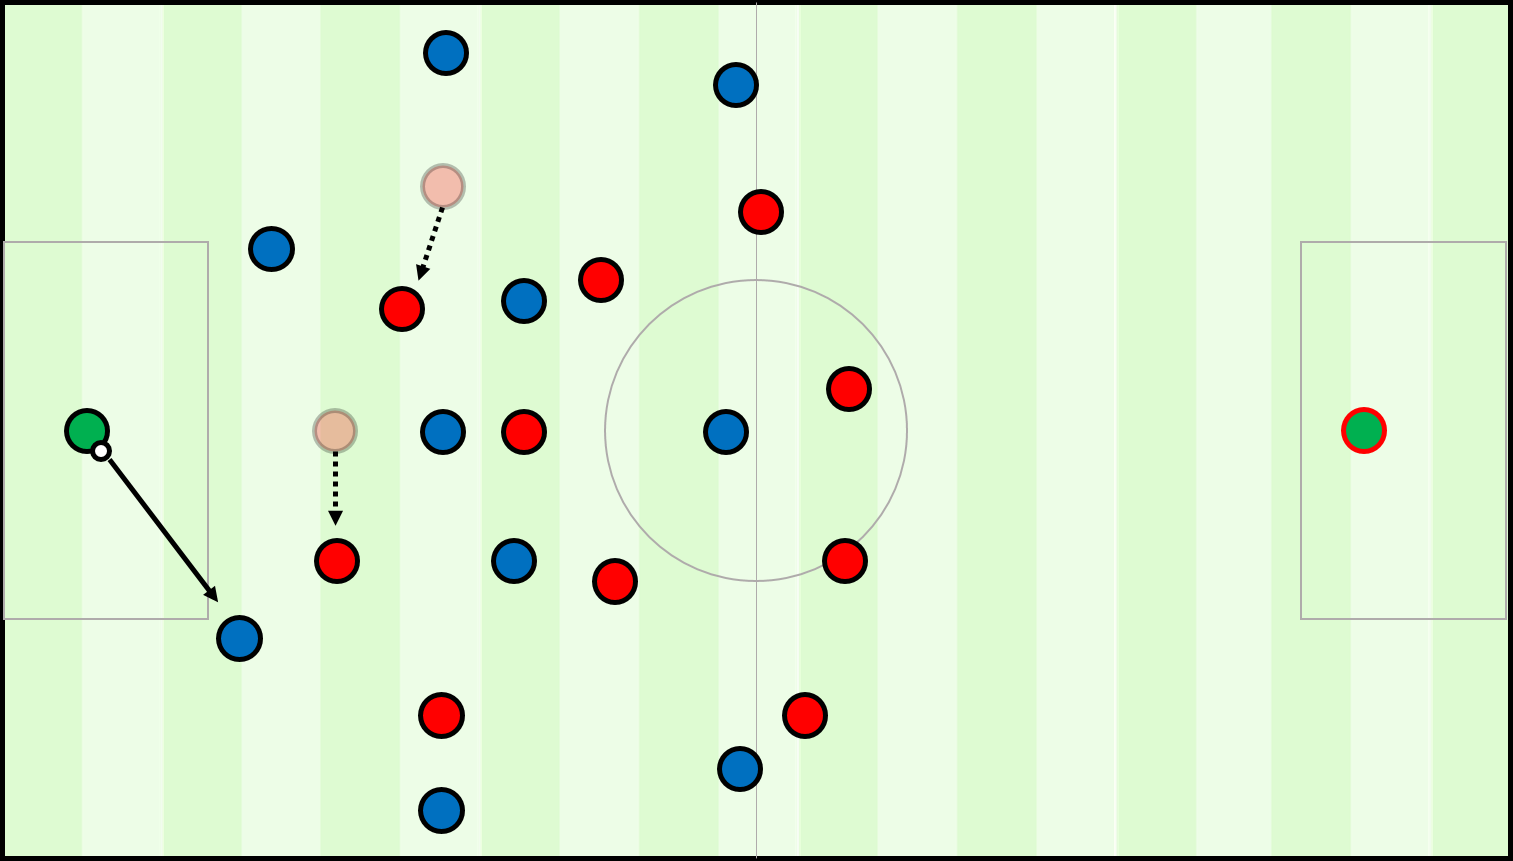 The goalkeeper's first pass is towards one of the centre-backs who have split to the edge of the penalty box. This means the opposition's single #9 can only press to one side of the pitch, giving the team in possession space on the opposite side to progress